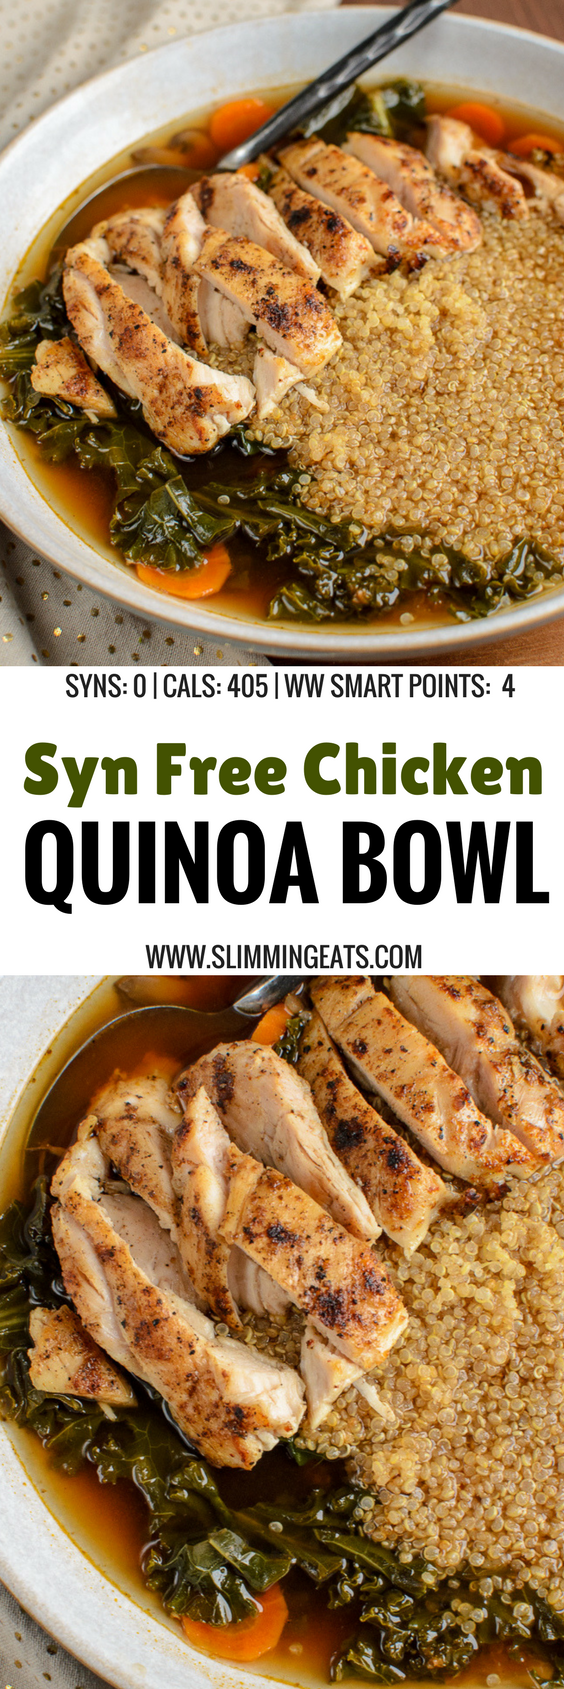 Give me this Syn Free Healthy Chicken Quinoa Bowl for lunch any day - EVERY day. It's heavenly!! Gluten Free, Dairy Free, Slimming World and Weight Watchers friendly